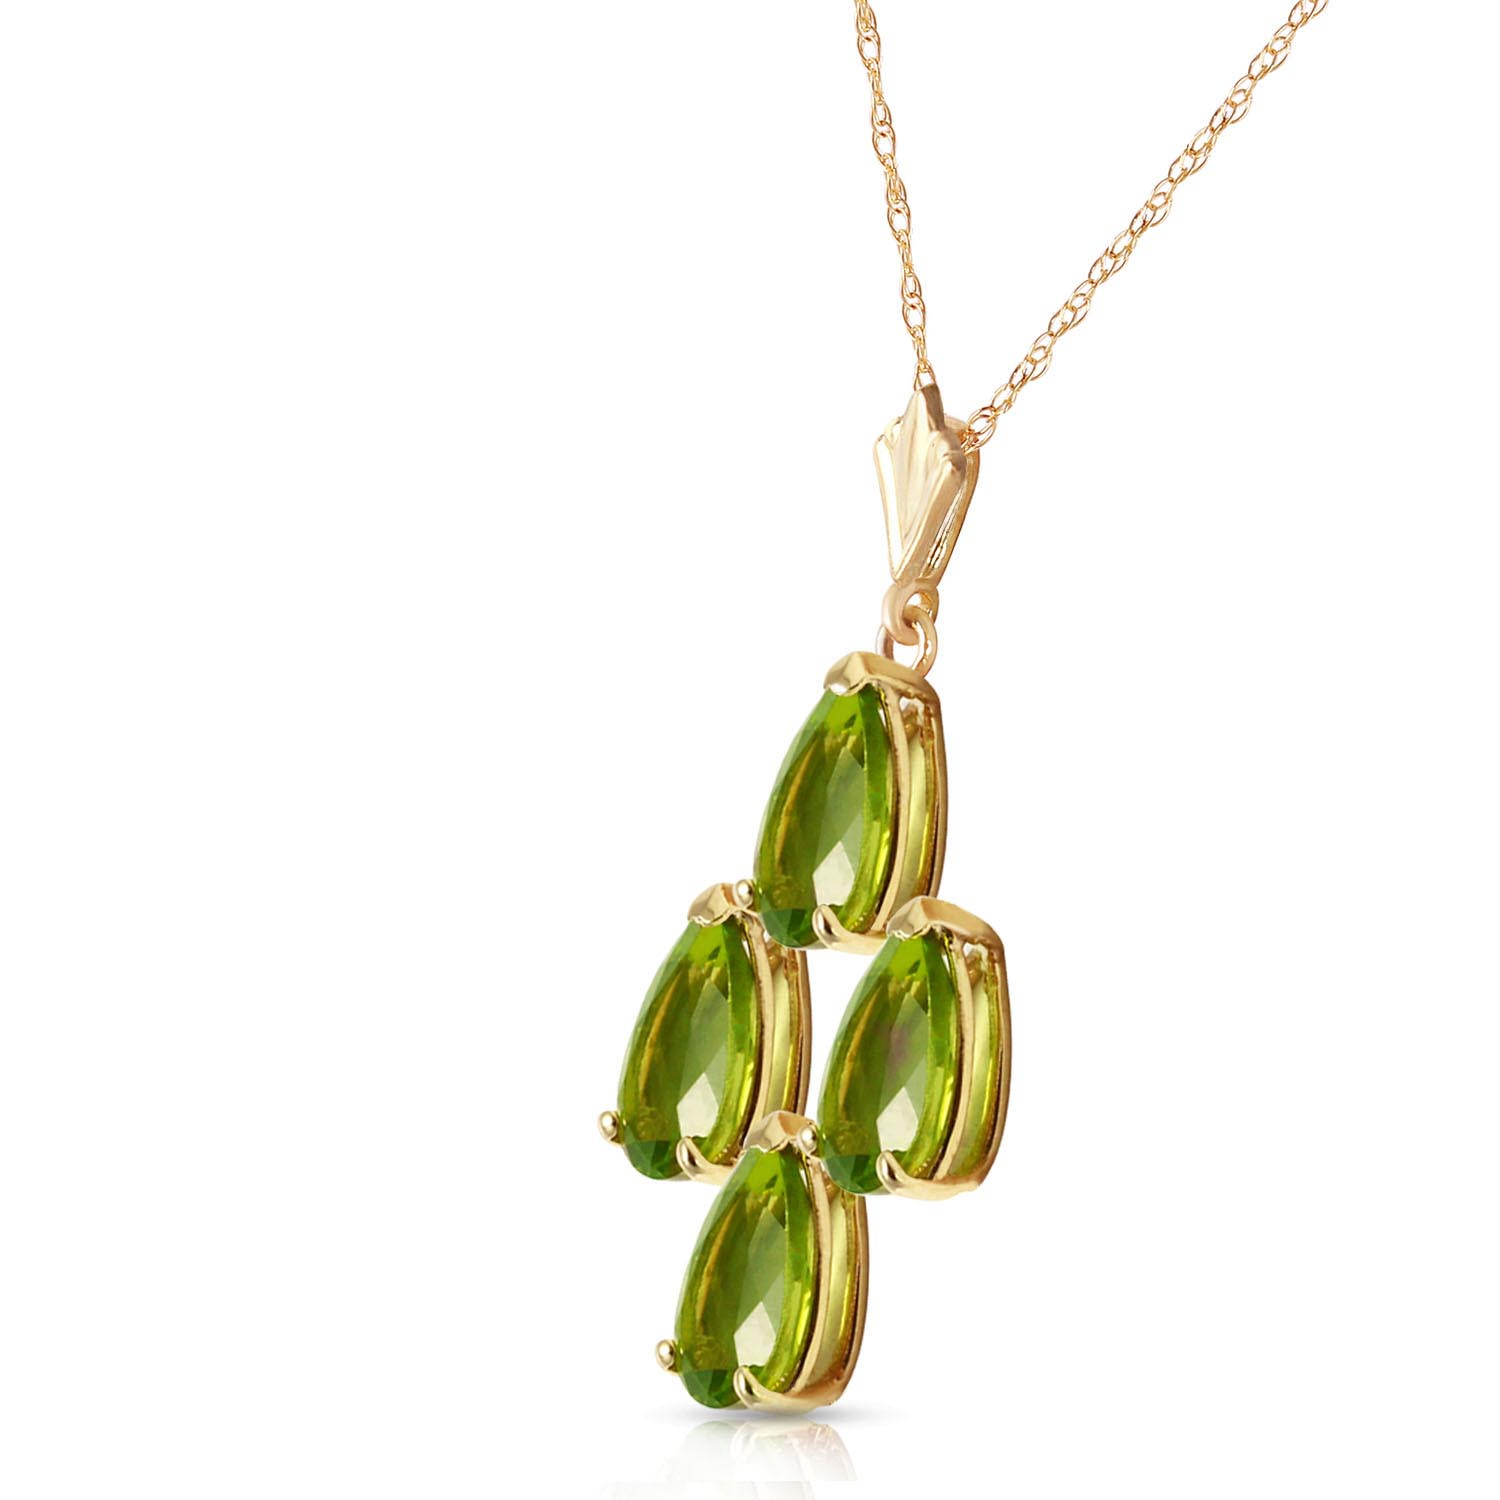 Pear Cut Peridot Pendant Necklace 2.25ctw in 9ct Gold